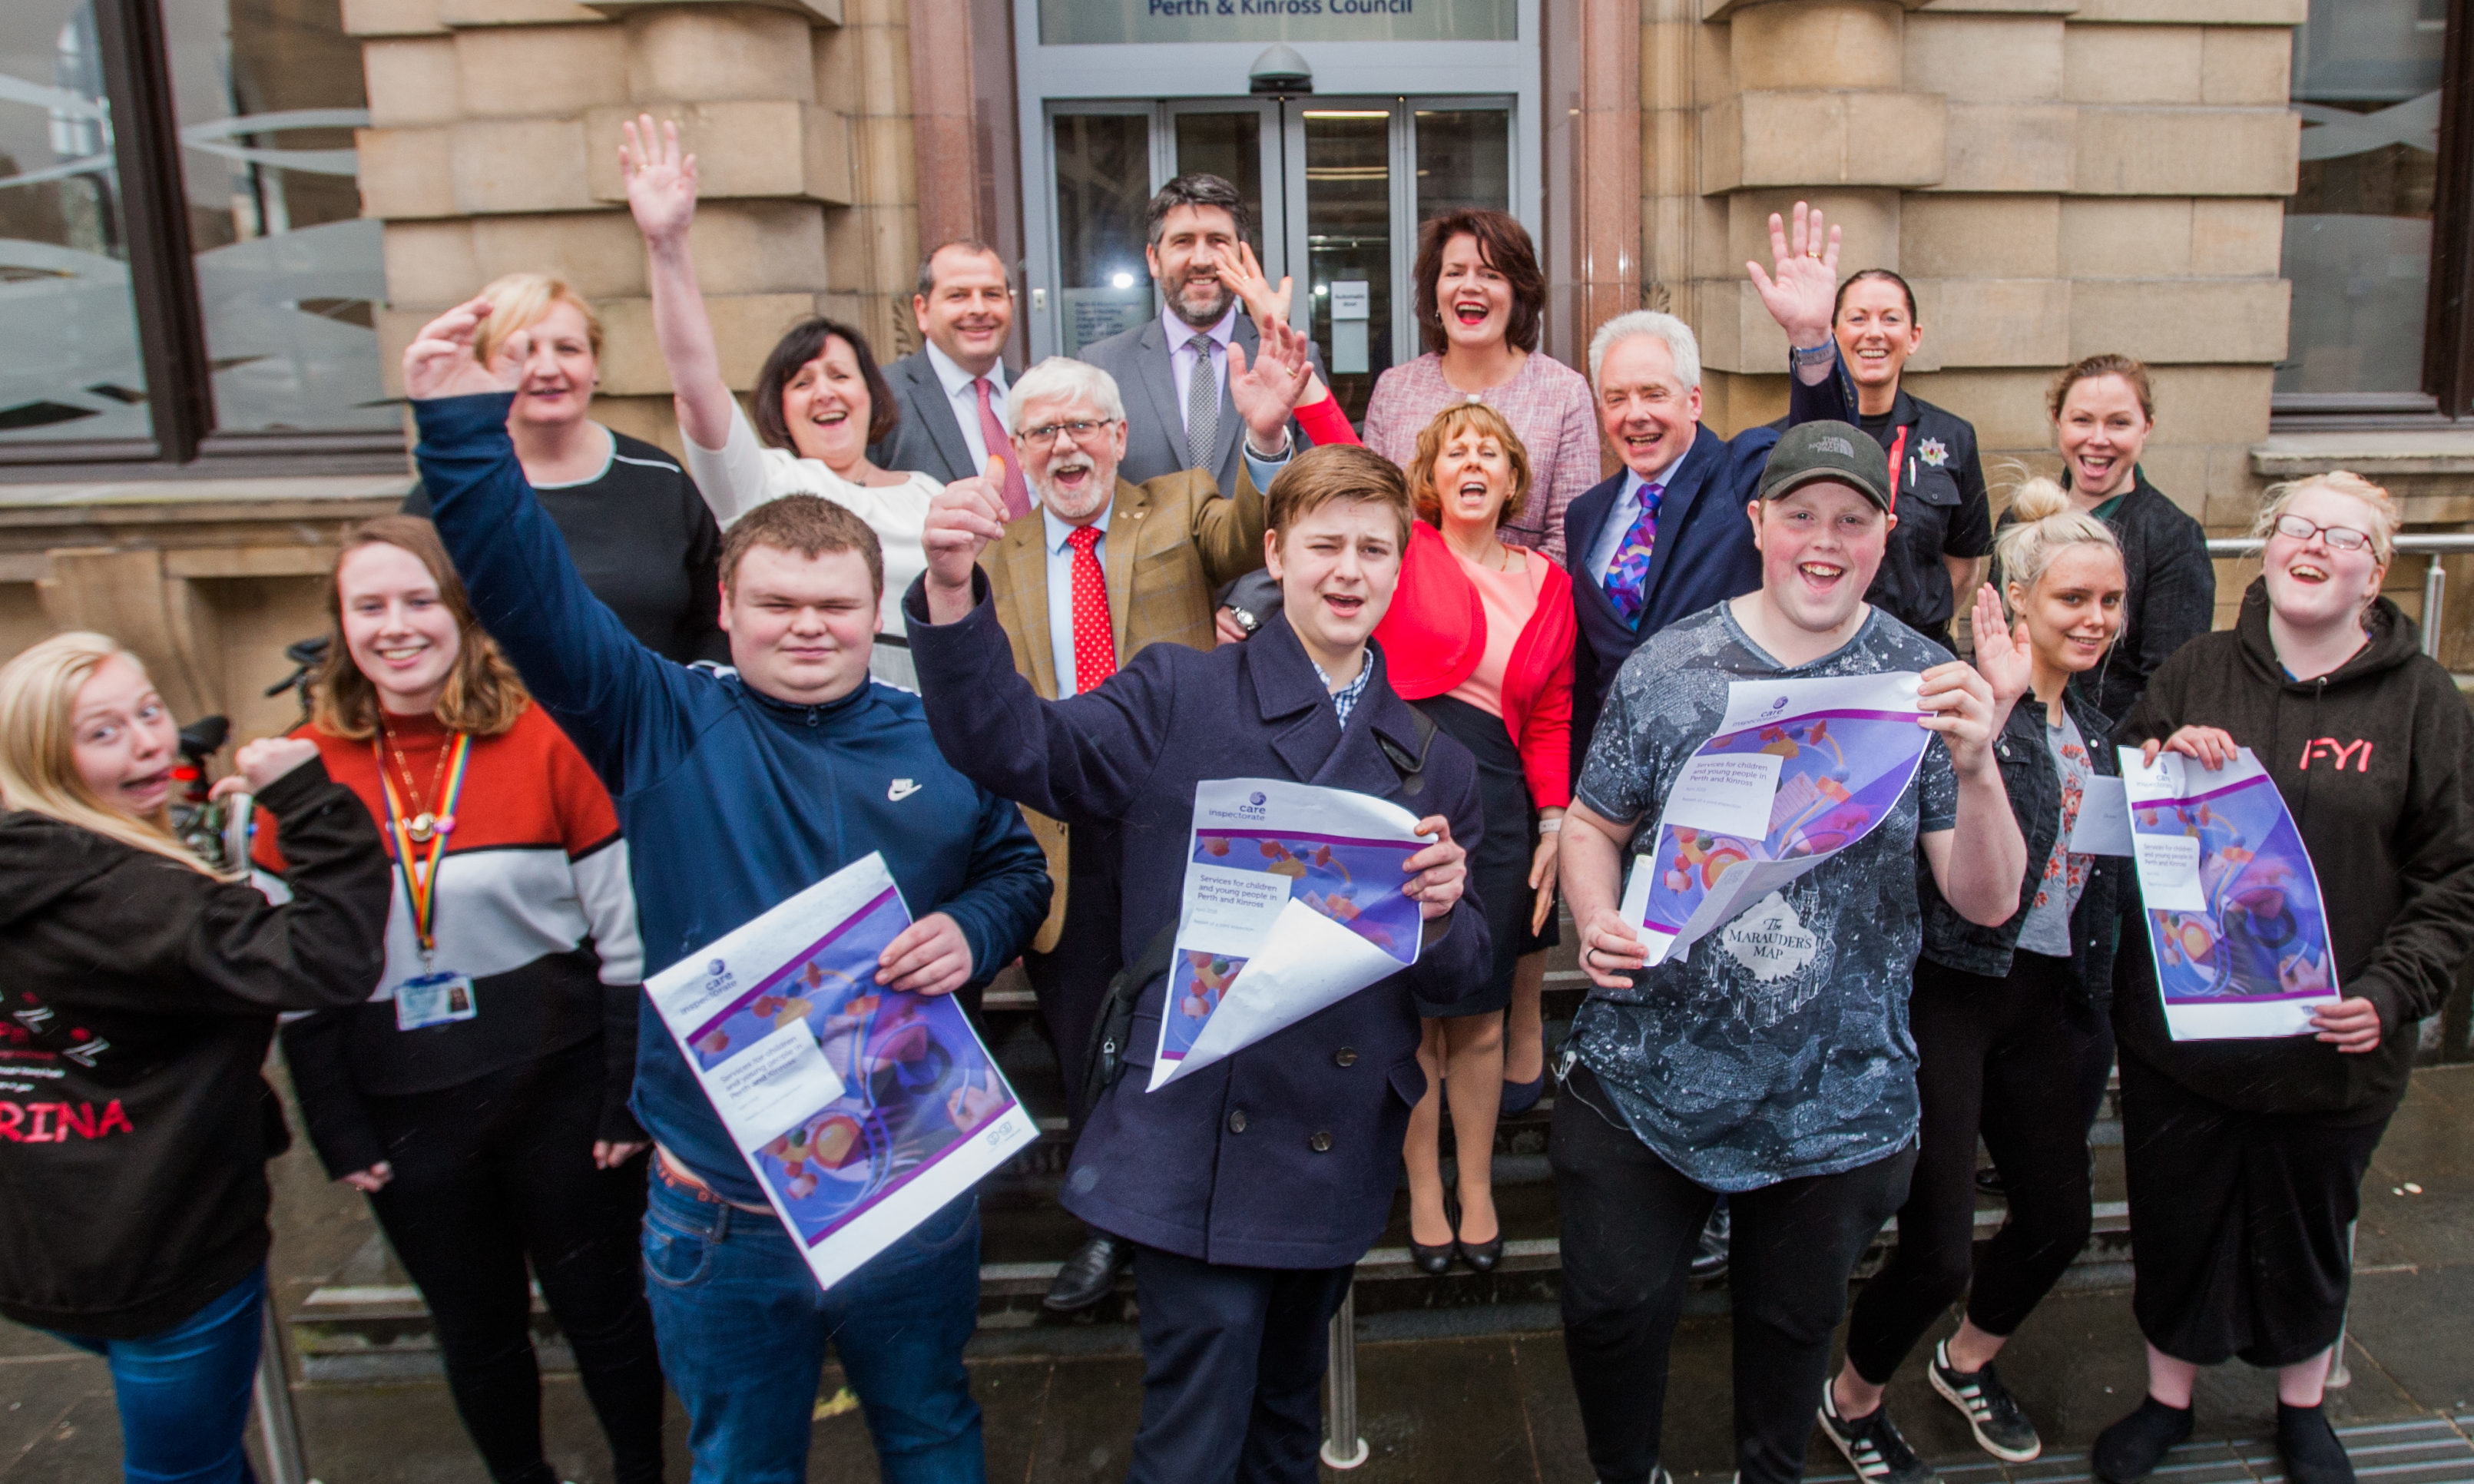 Perth and Kinross Council celebrates a glowing report in relation to youth projects. Picture shows some of those involved including Chief Executive Bernadette Malone and Provost Dennis Melloy (middle, centre).